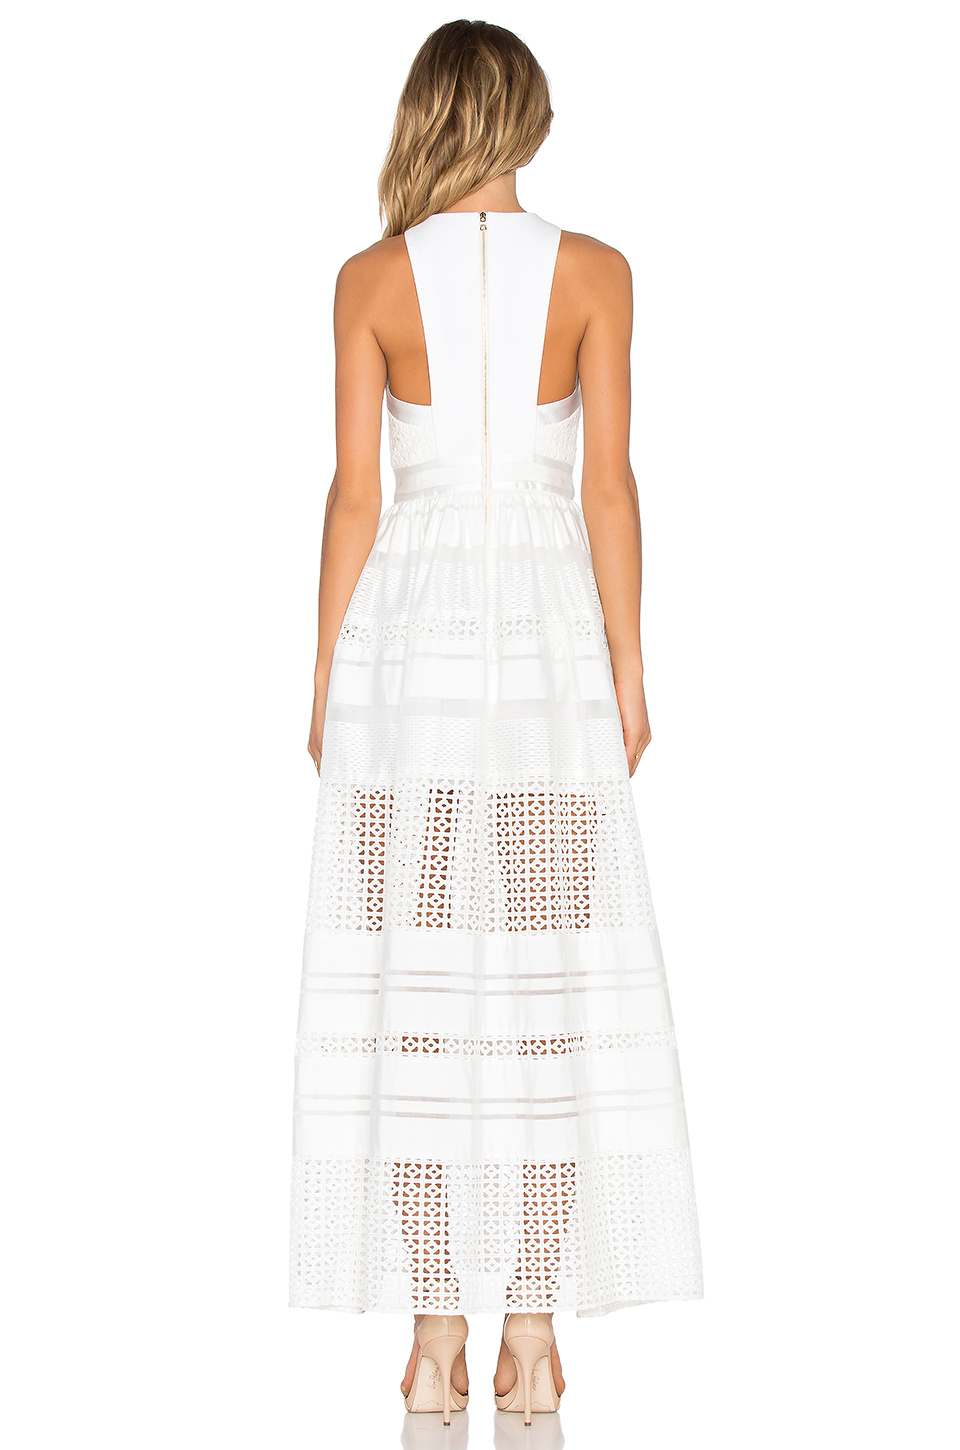 Lyst three floor zittel maxi dress in white for 11th floor apparel